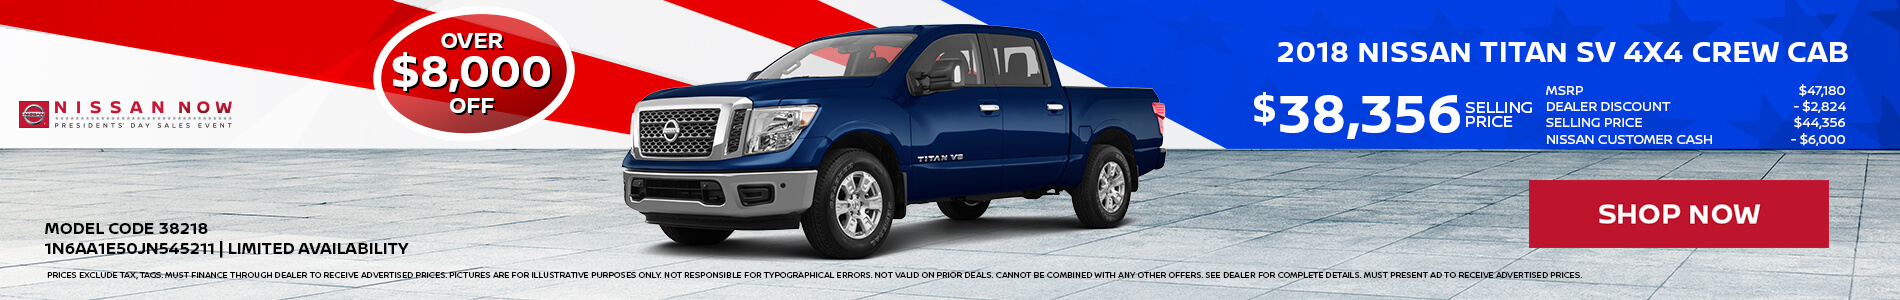 Nissan Titan $8,000 OFF MSRP